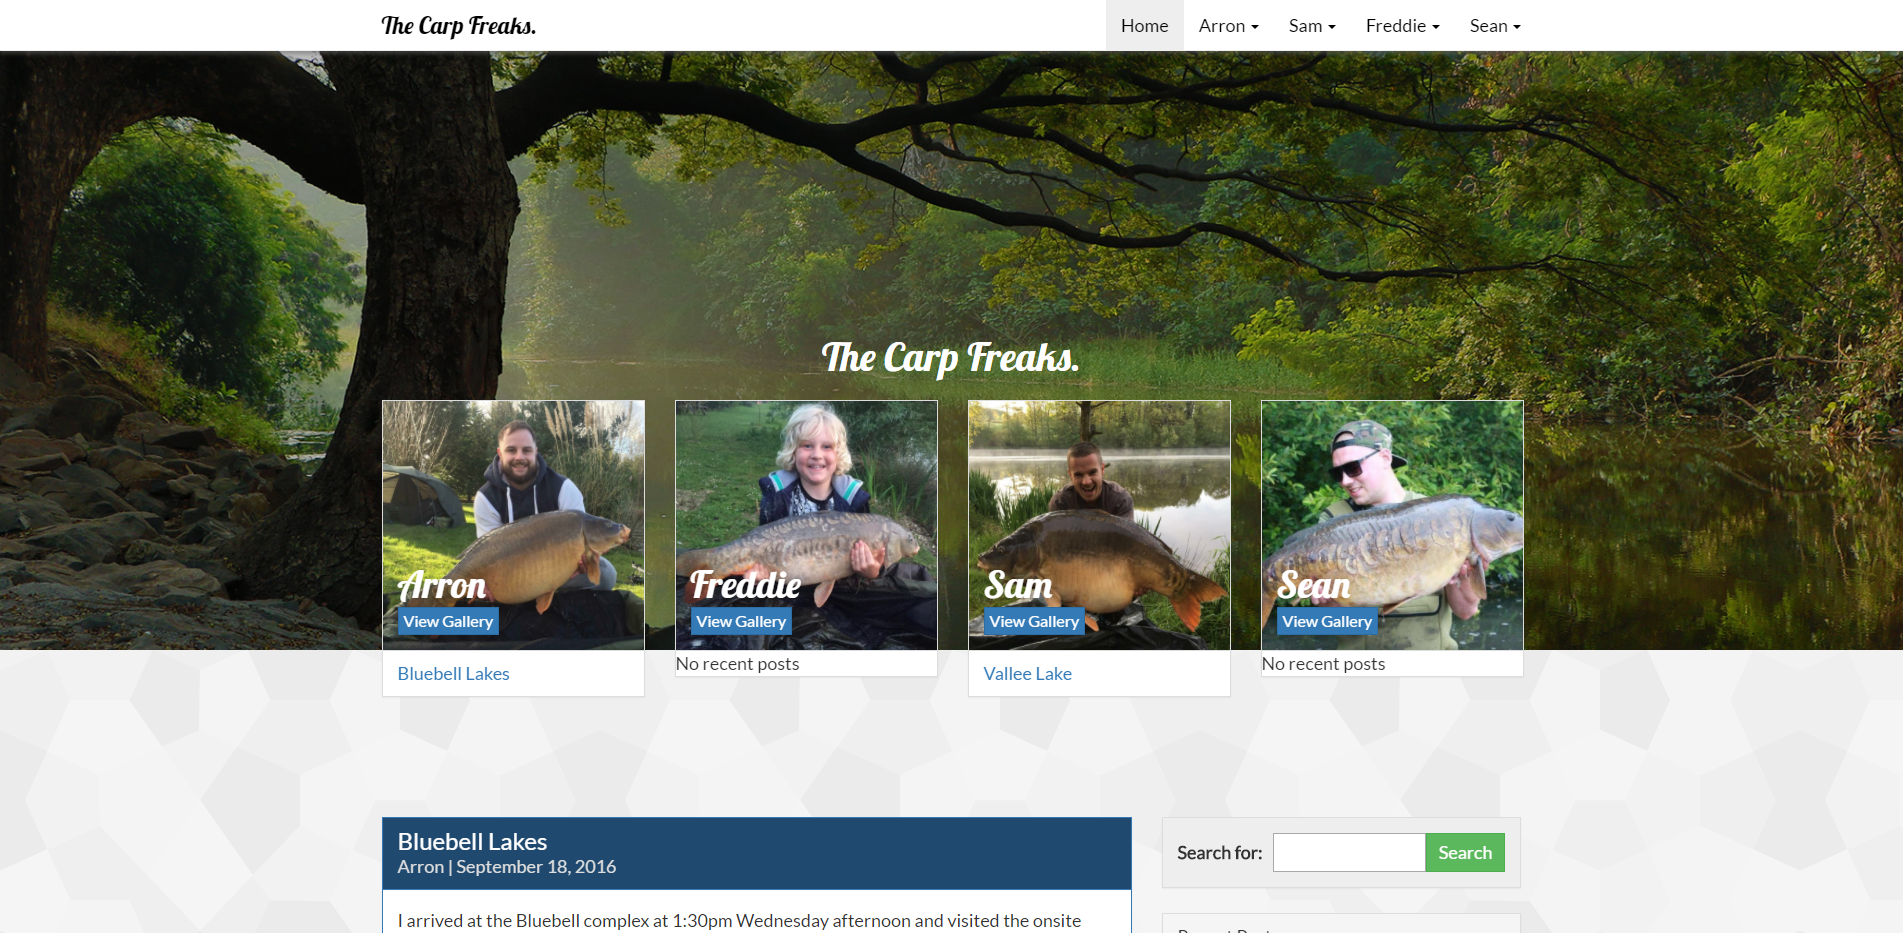 The Carp Freaks